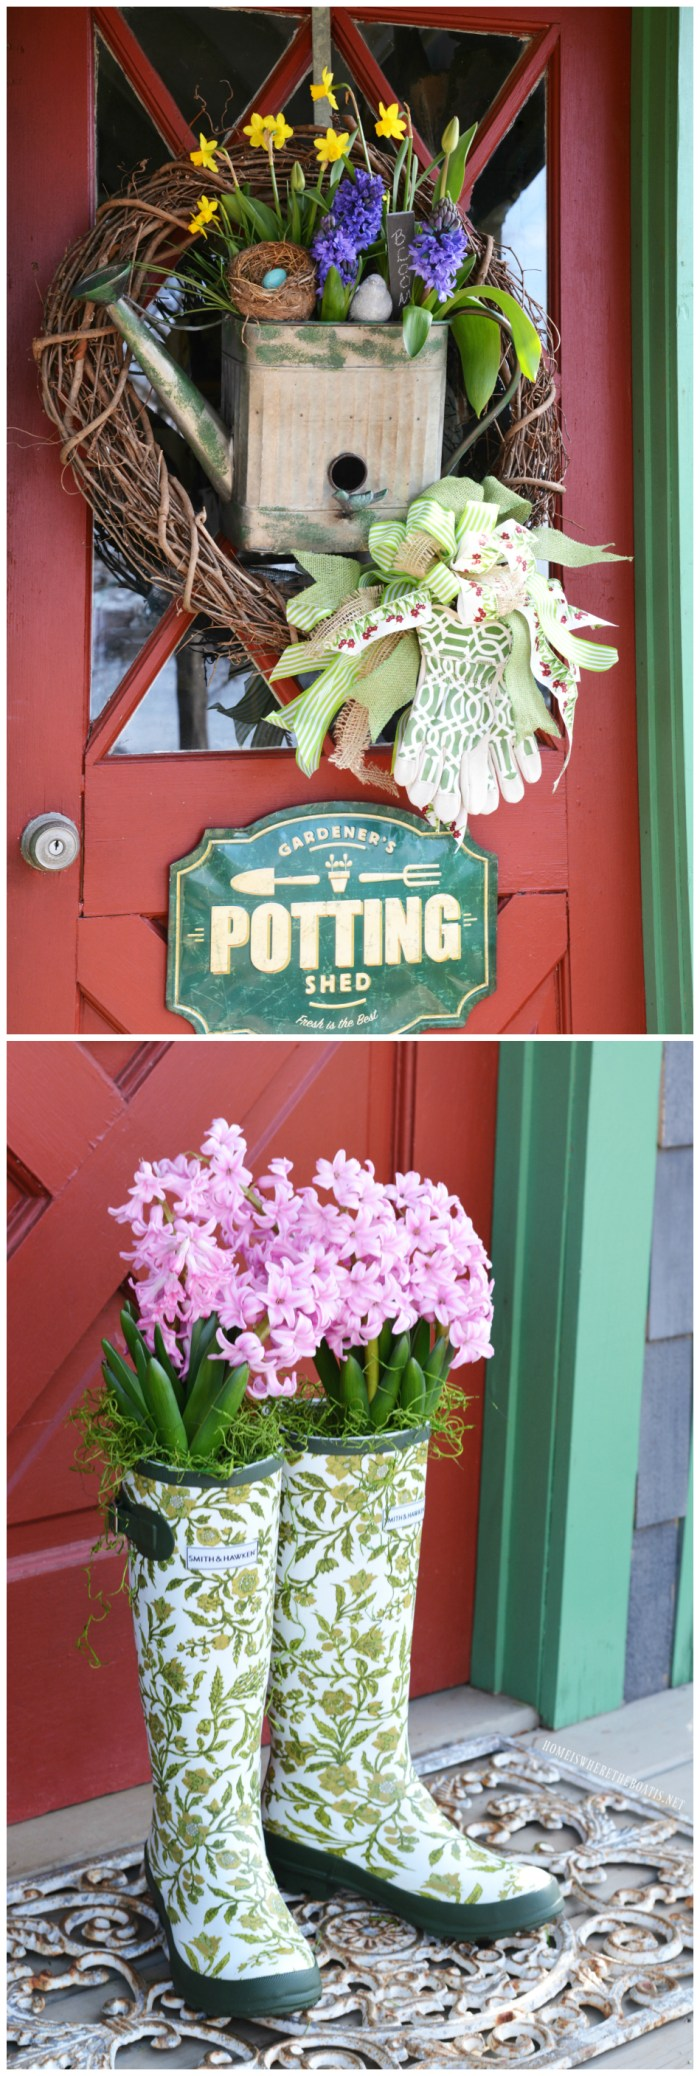 Blooming Spring Wreath for the Potting Shed and Wellies with Hyacinths | ©homeiswheretheboatis.net #garden #flowers #spring #wreath #shed #wellies